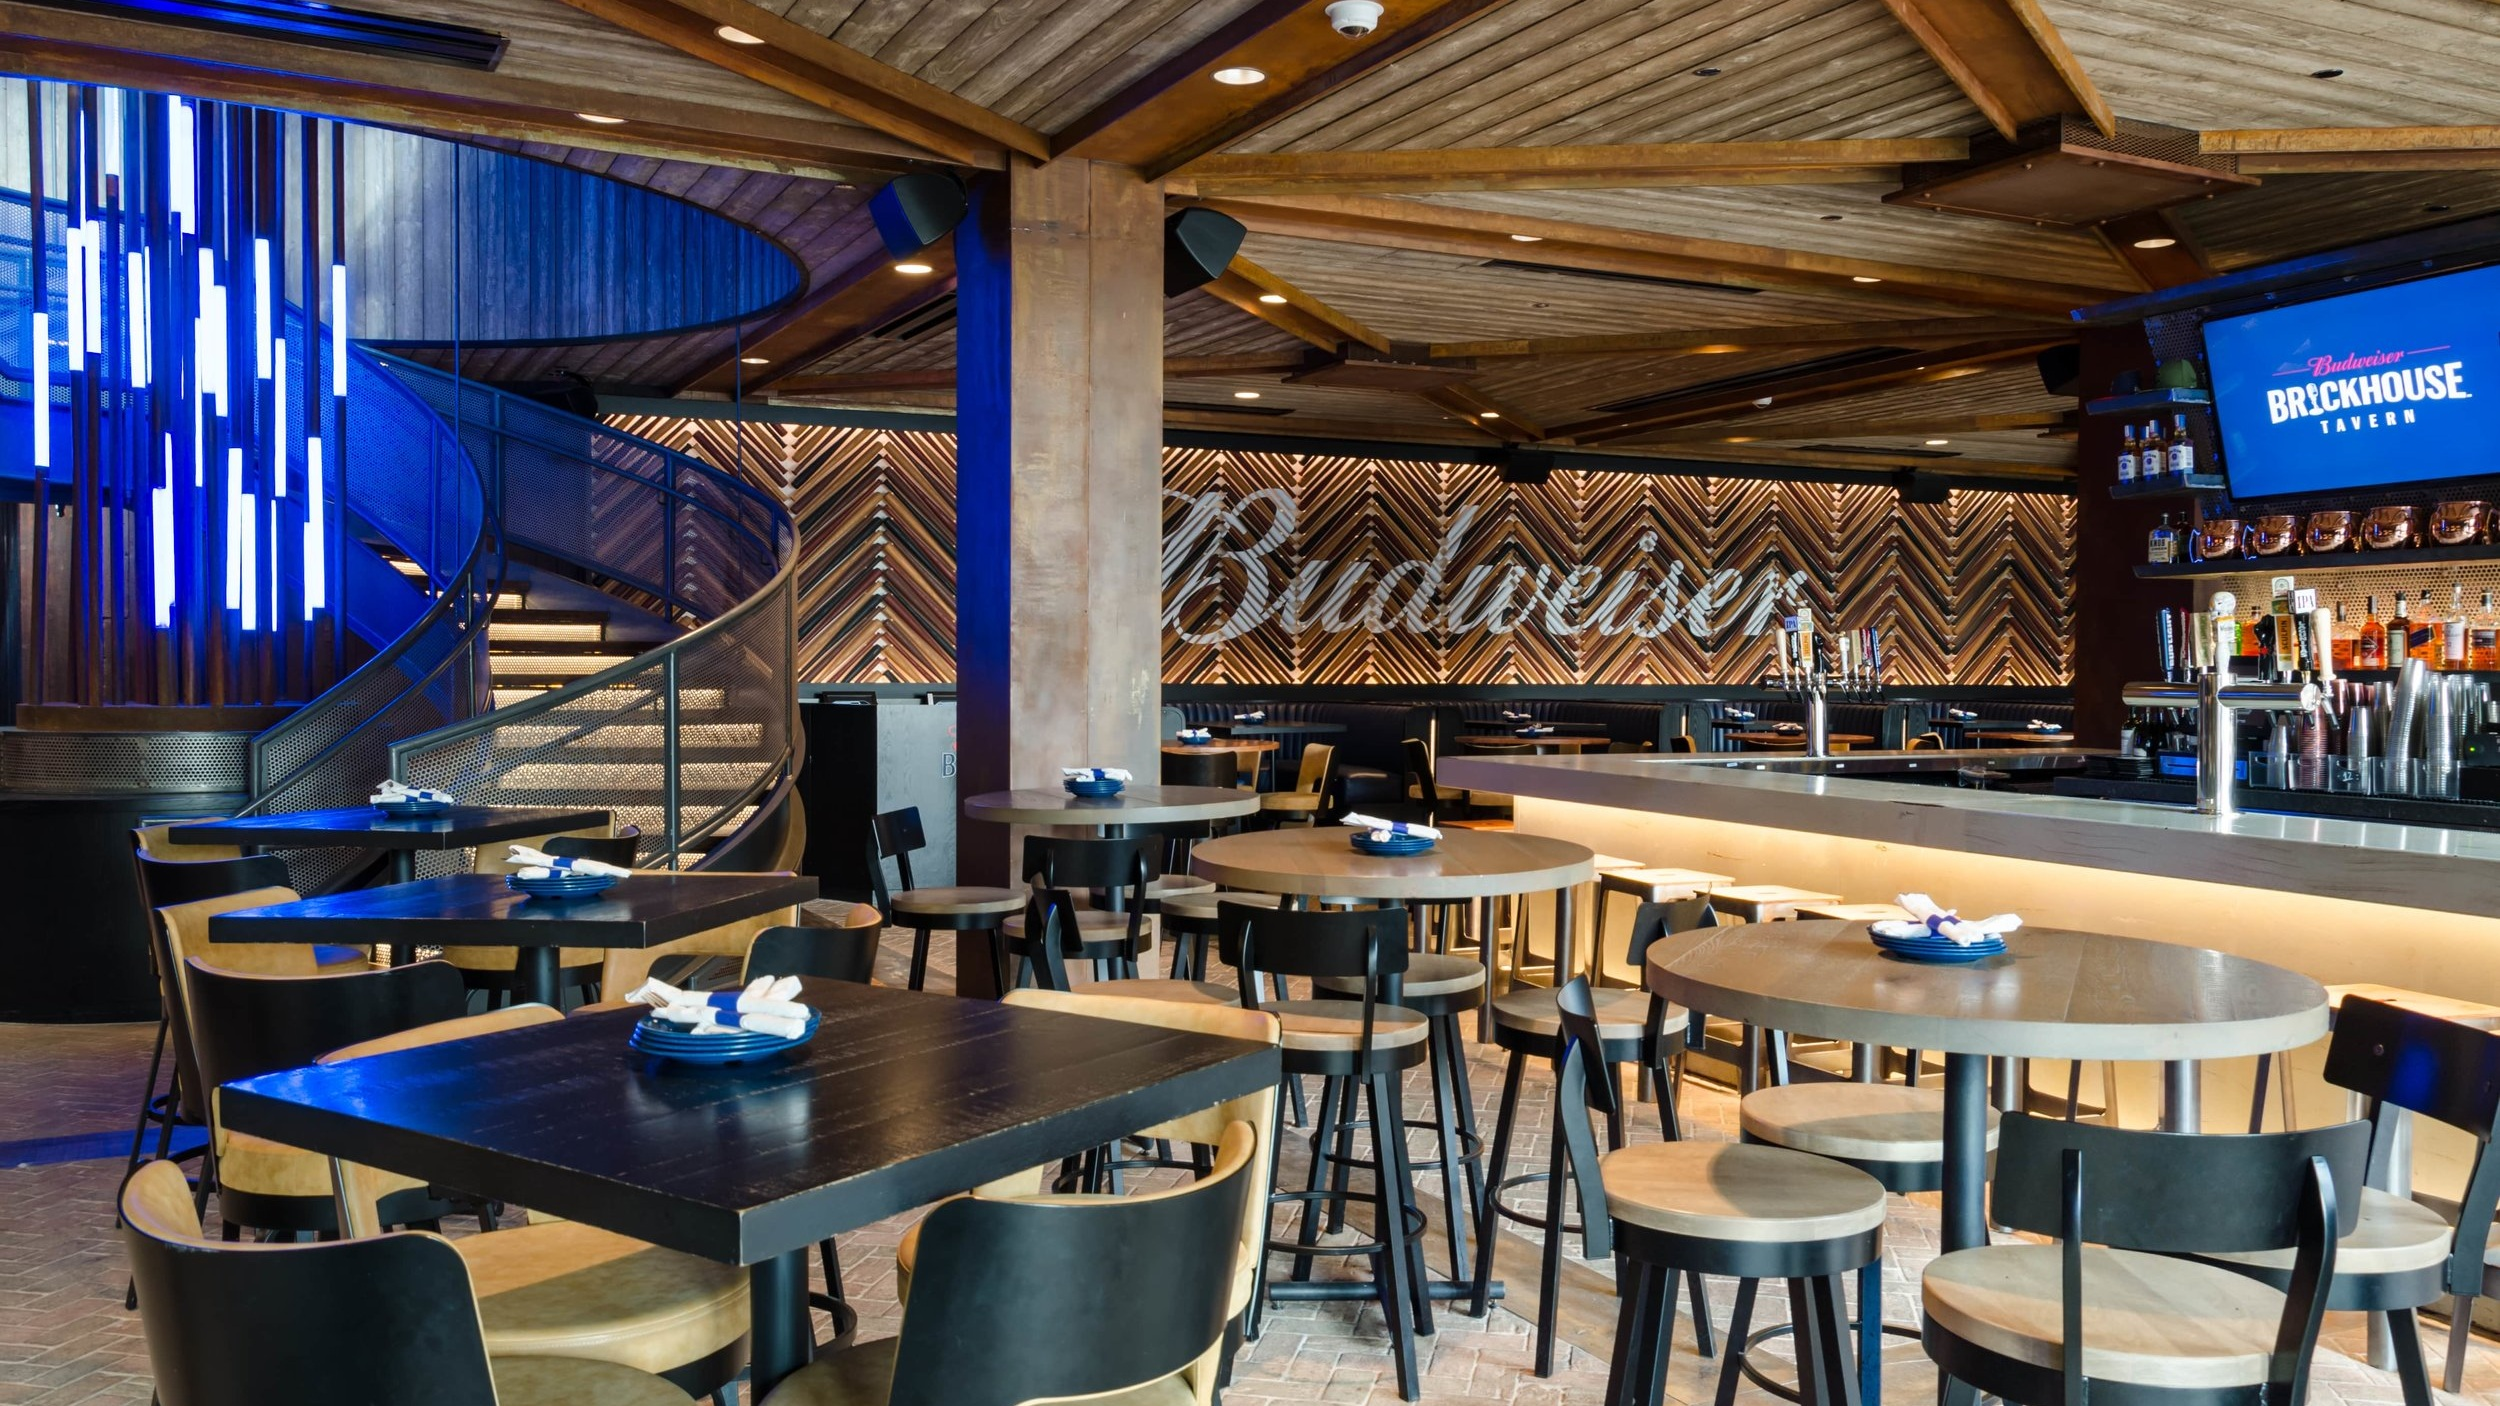 Budweiser Brickhouse Tavern - NEW TWISTS ON TAVERN-STYLE DININGAn elevated sports-dining experience with four expansive bars, two outdoor terraces and stunning views of historic Wrigley Field.